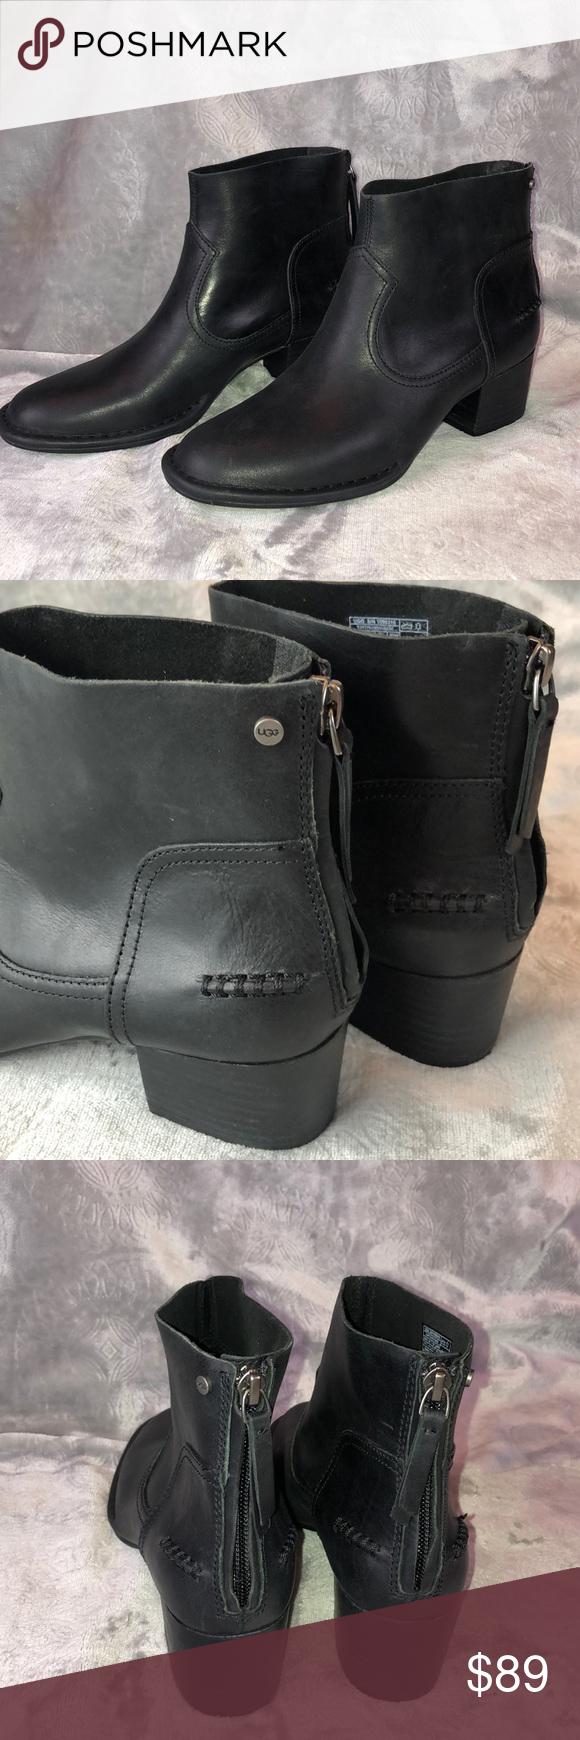 5243de33a22 UGG BANDARA LEATHER Ankle Boot NWT Brand new and never worn. NWT ...